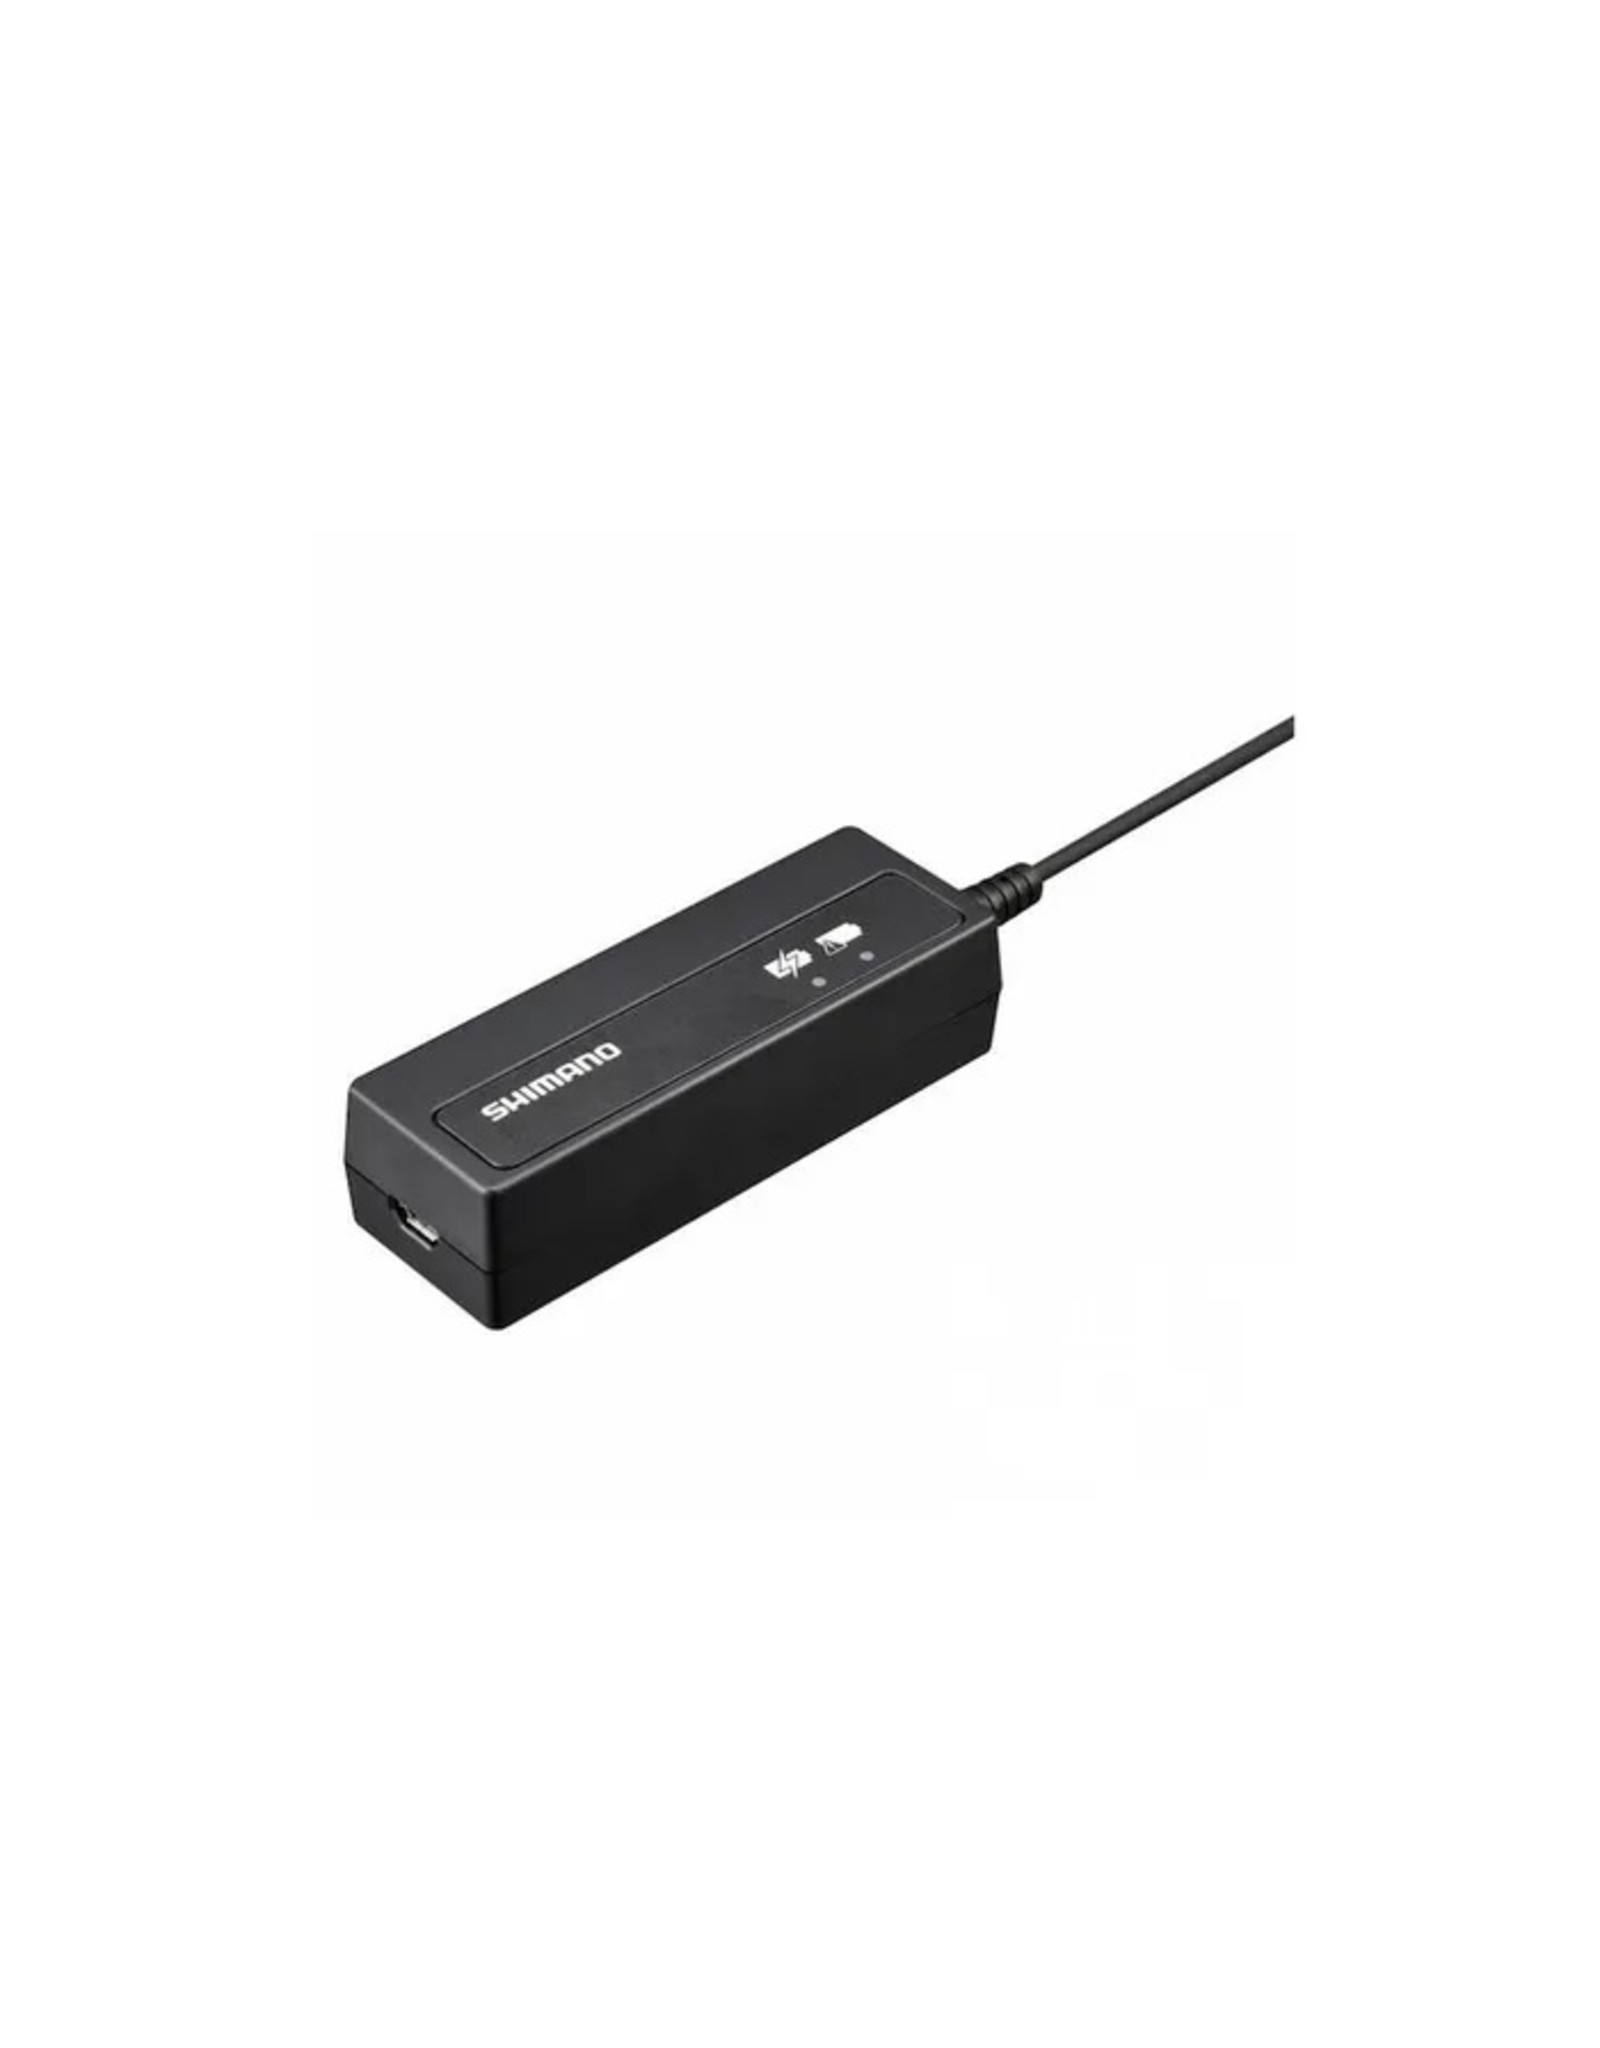 Shimano BATTERY CHARGER, SM-BCR2, FOR SM-BTR2 INCLUDING CHARGING CORD FOR USB PORT, IND.PACK